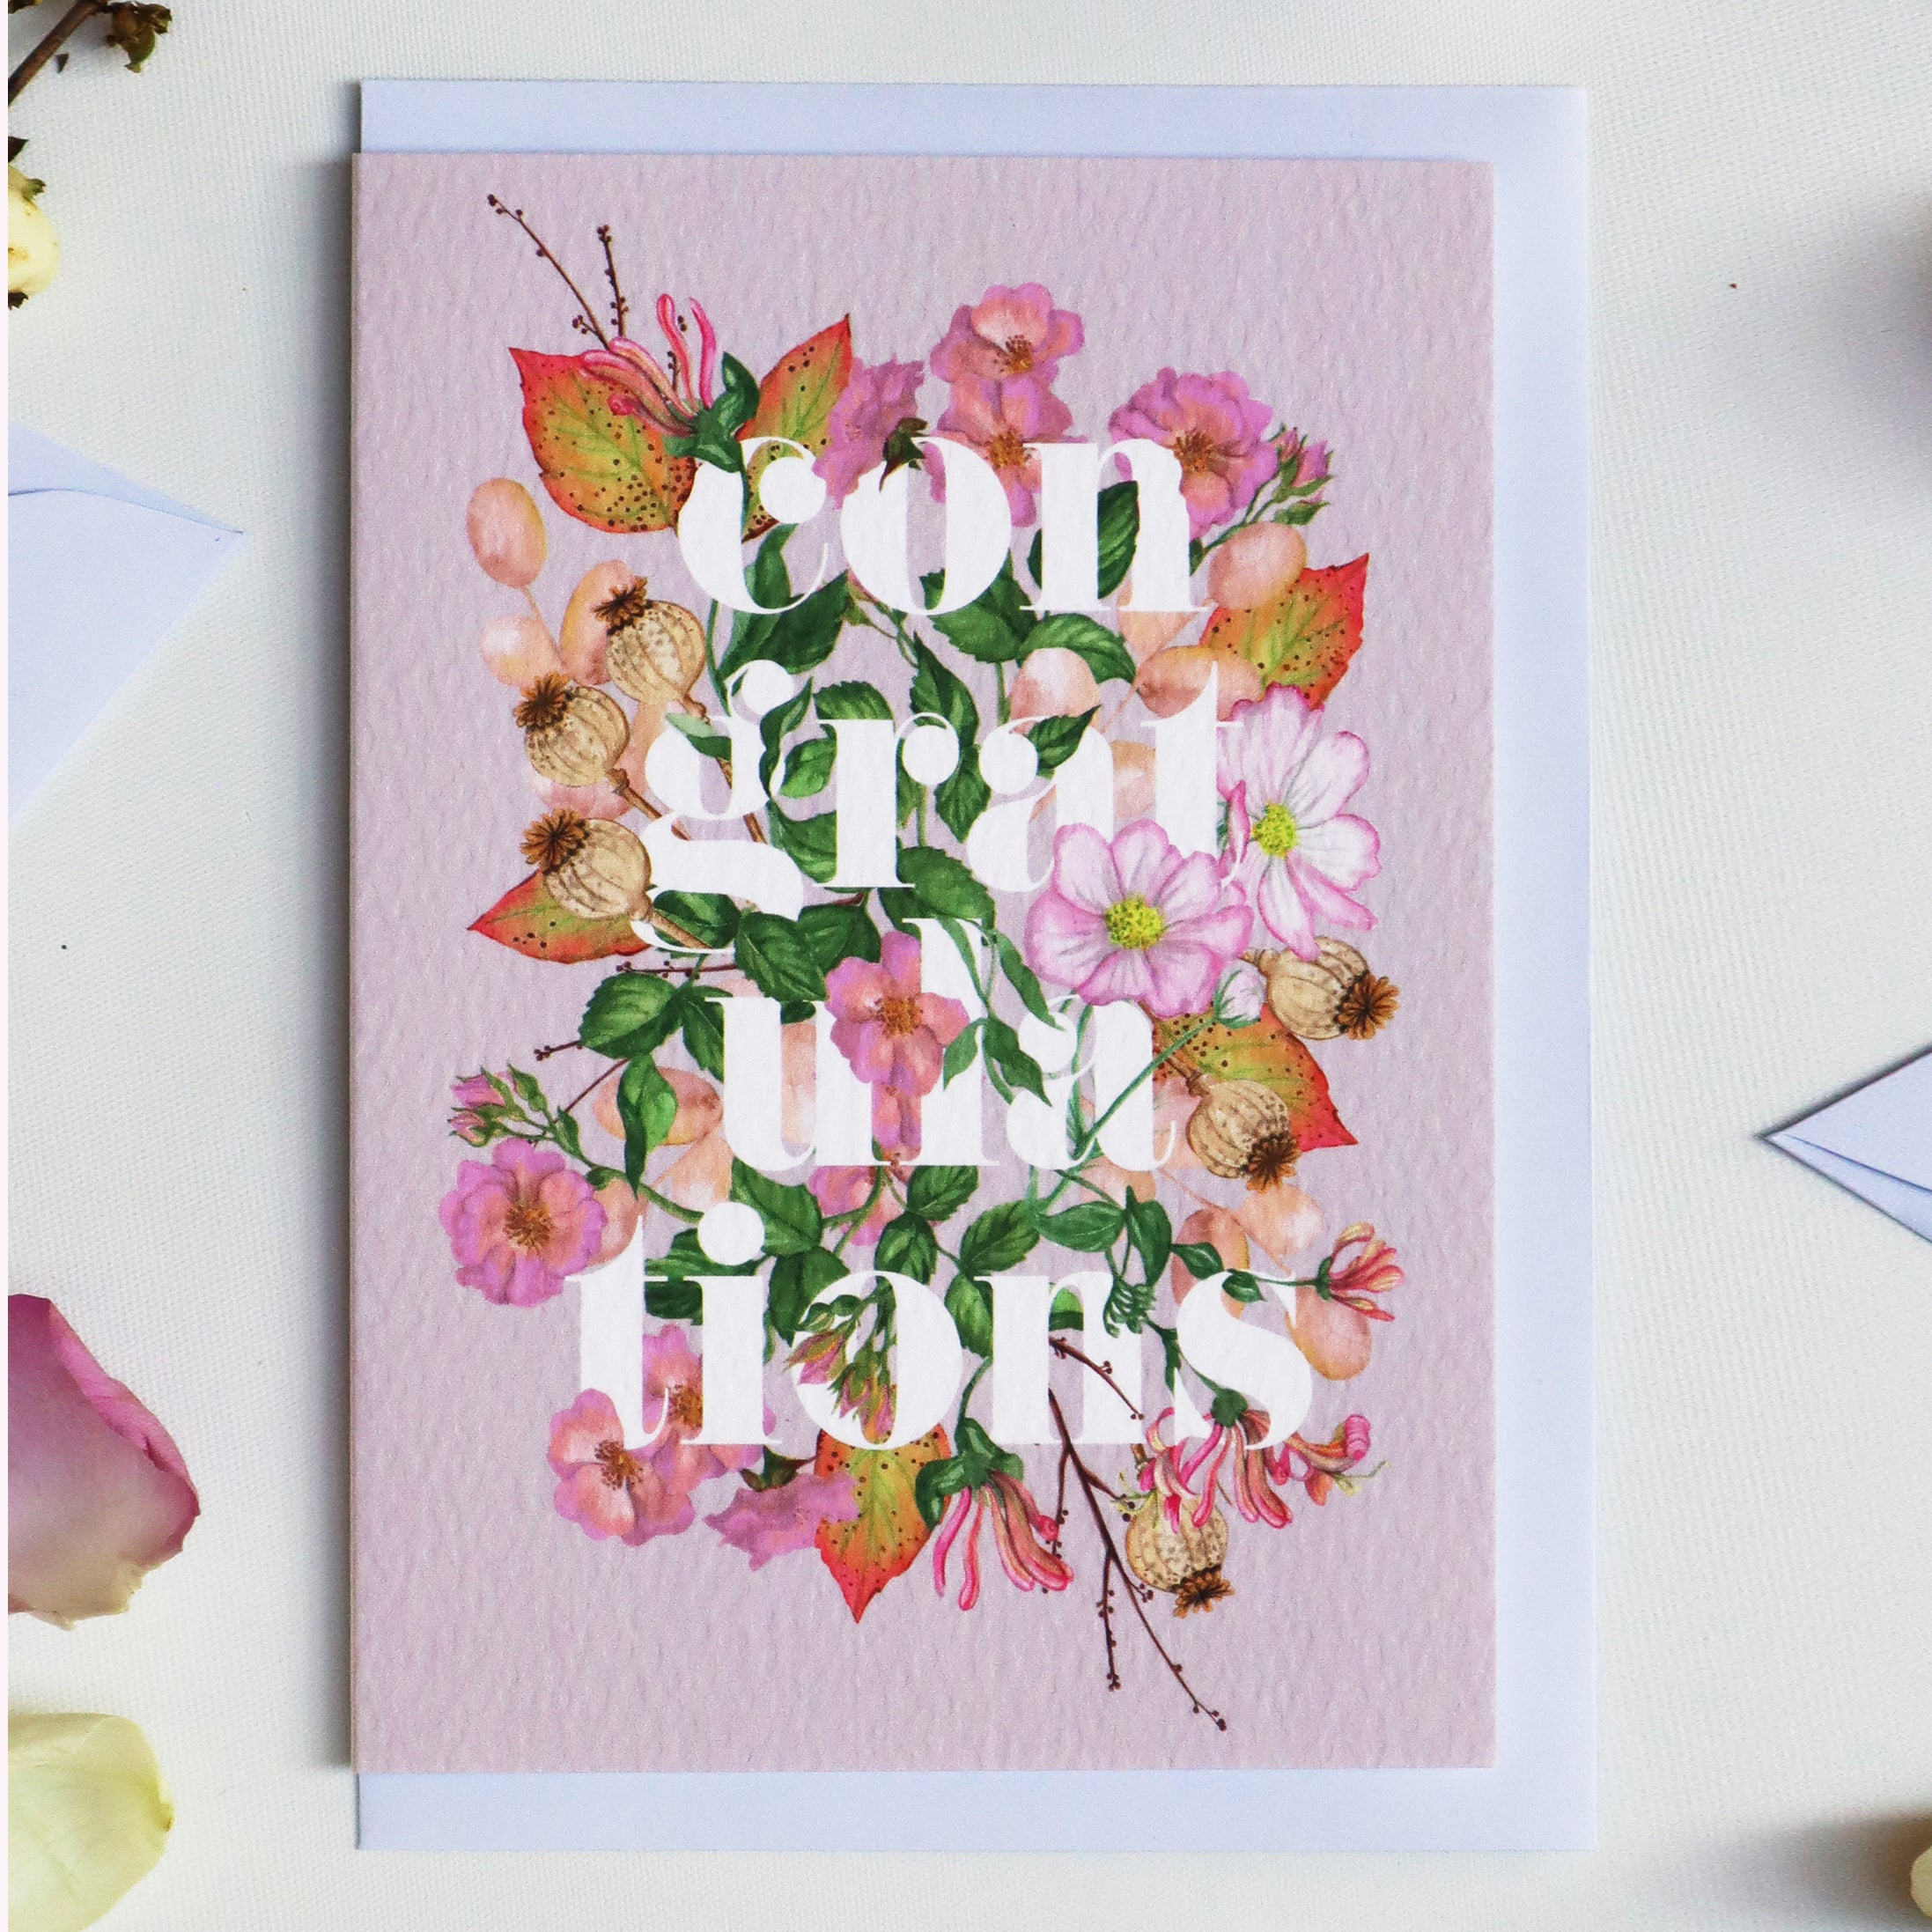 'Congratulations' Luxury Botanical Greeting Card